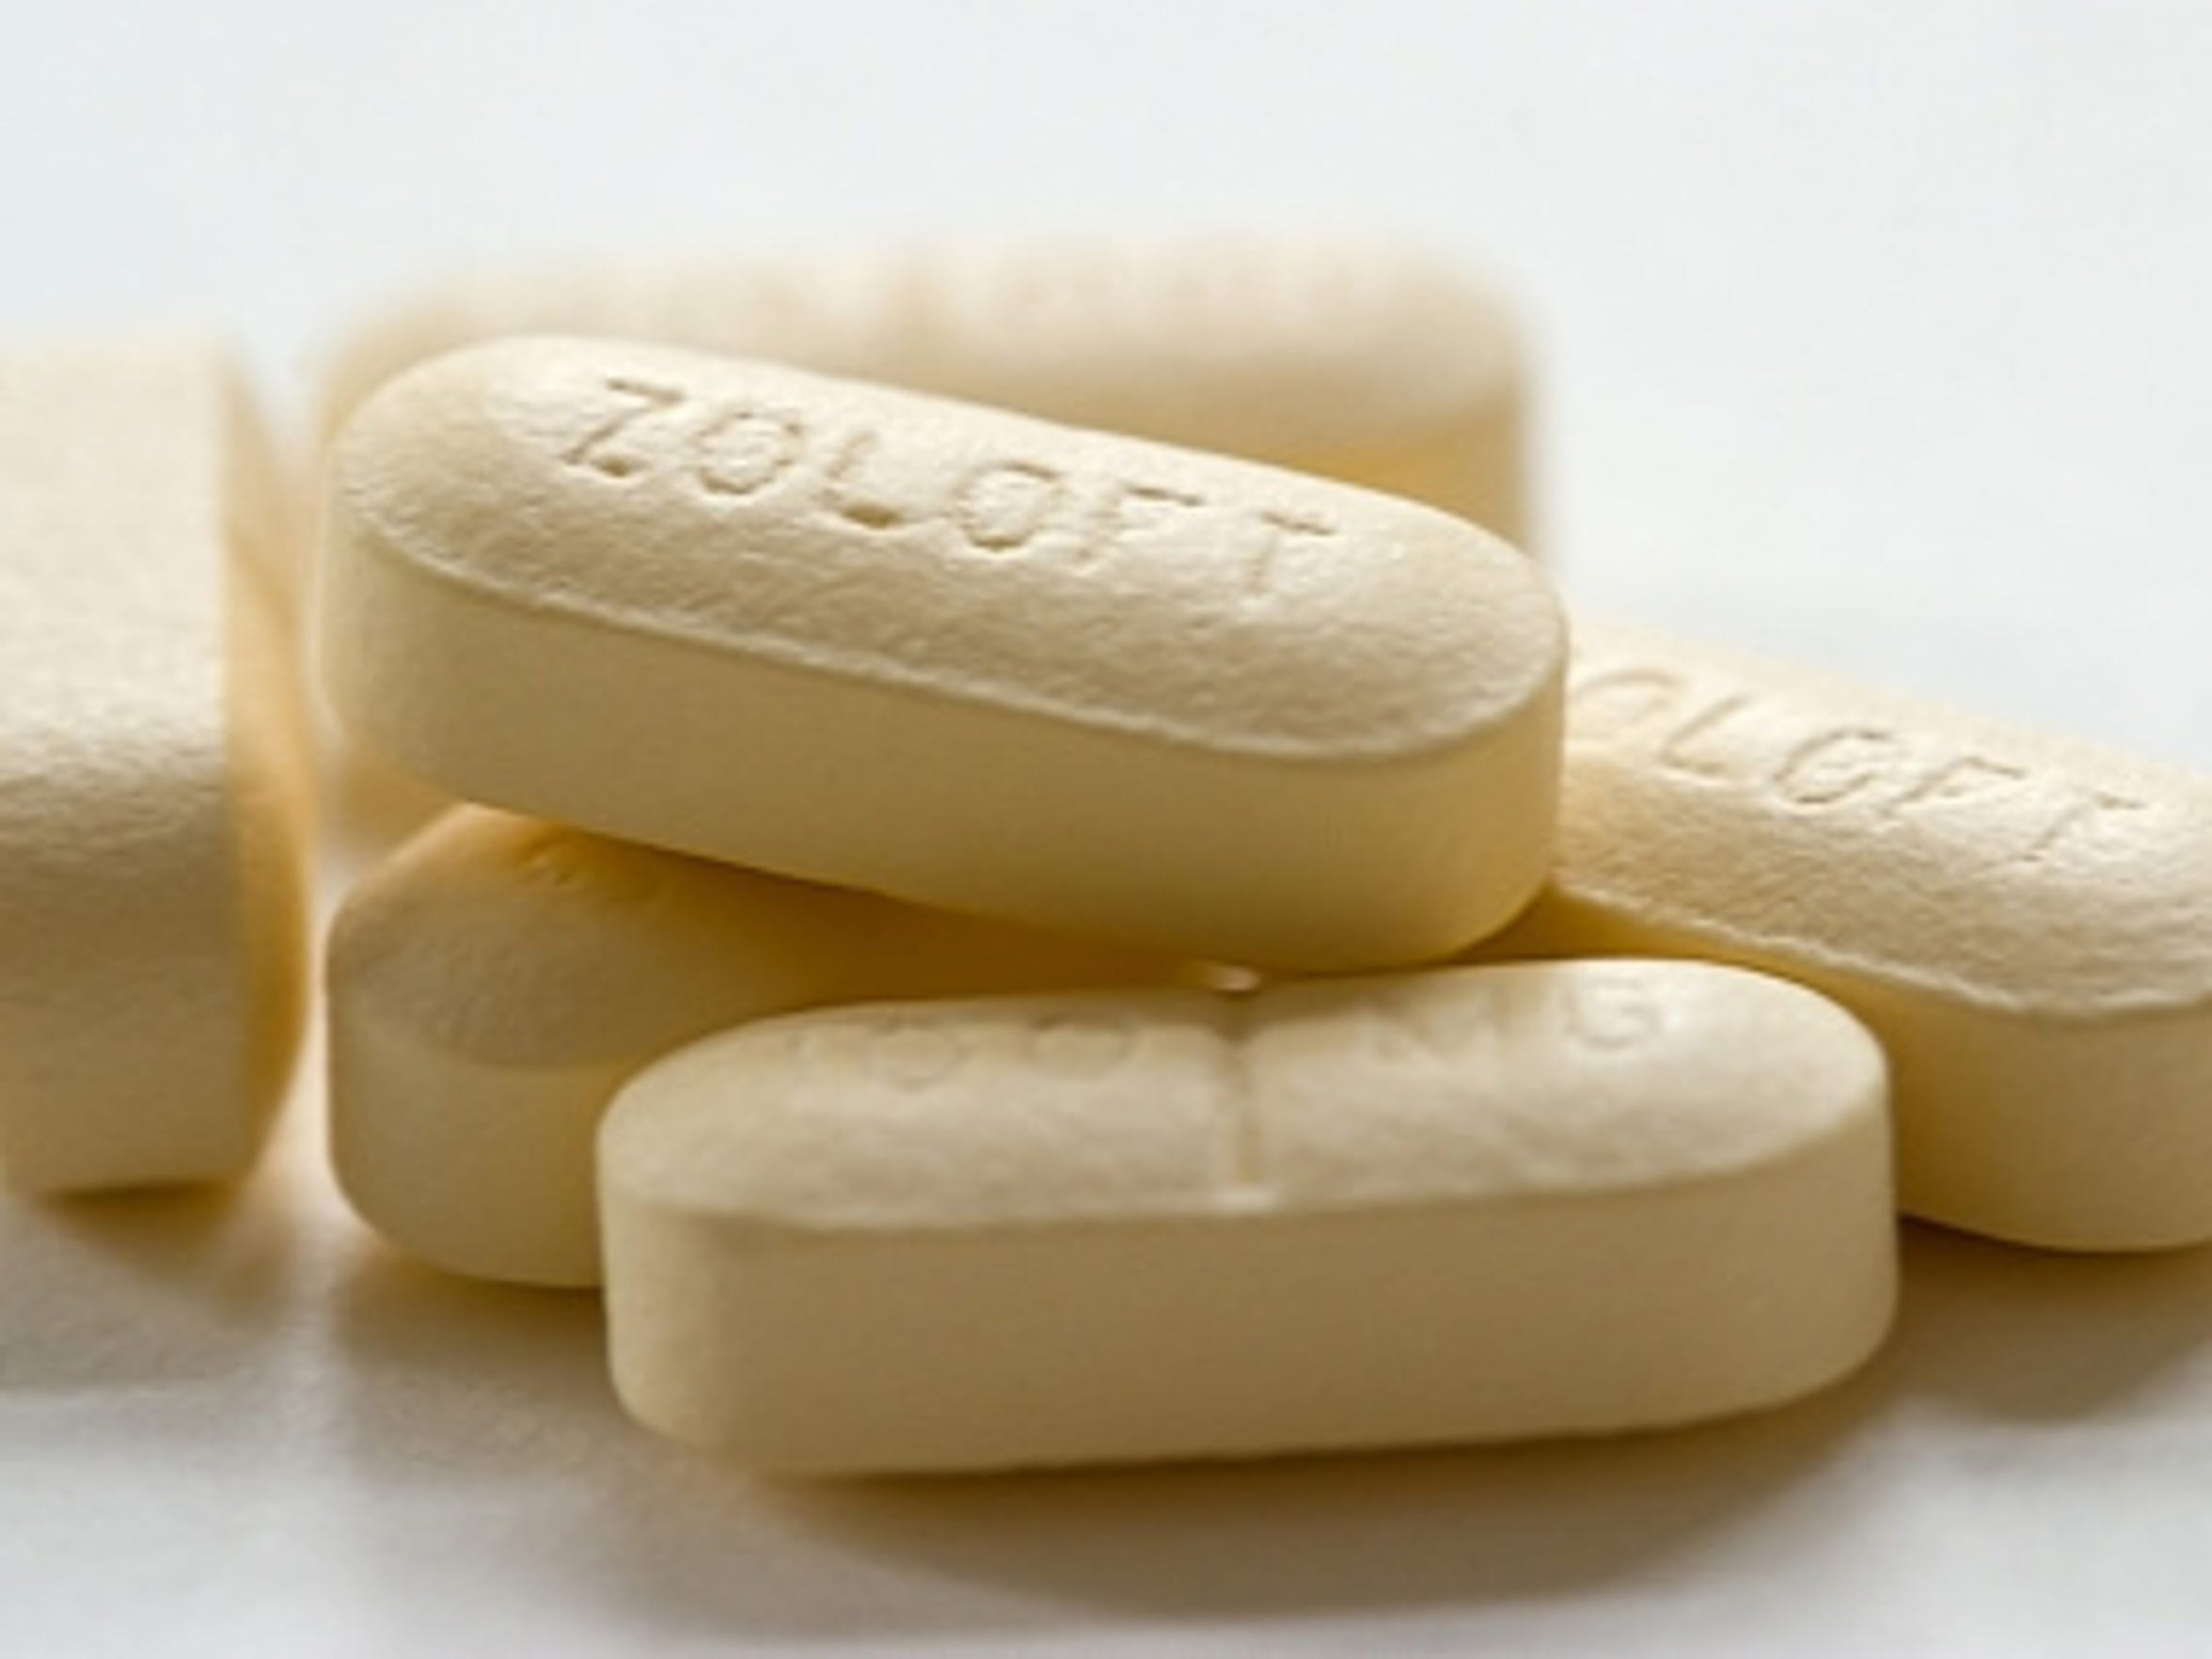 Zoloft (Sertraline hydrochloride) is also sold as Lustral,